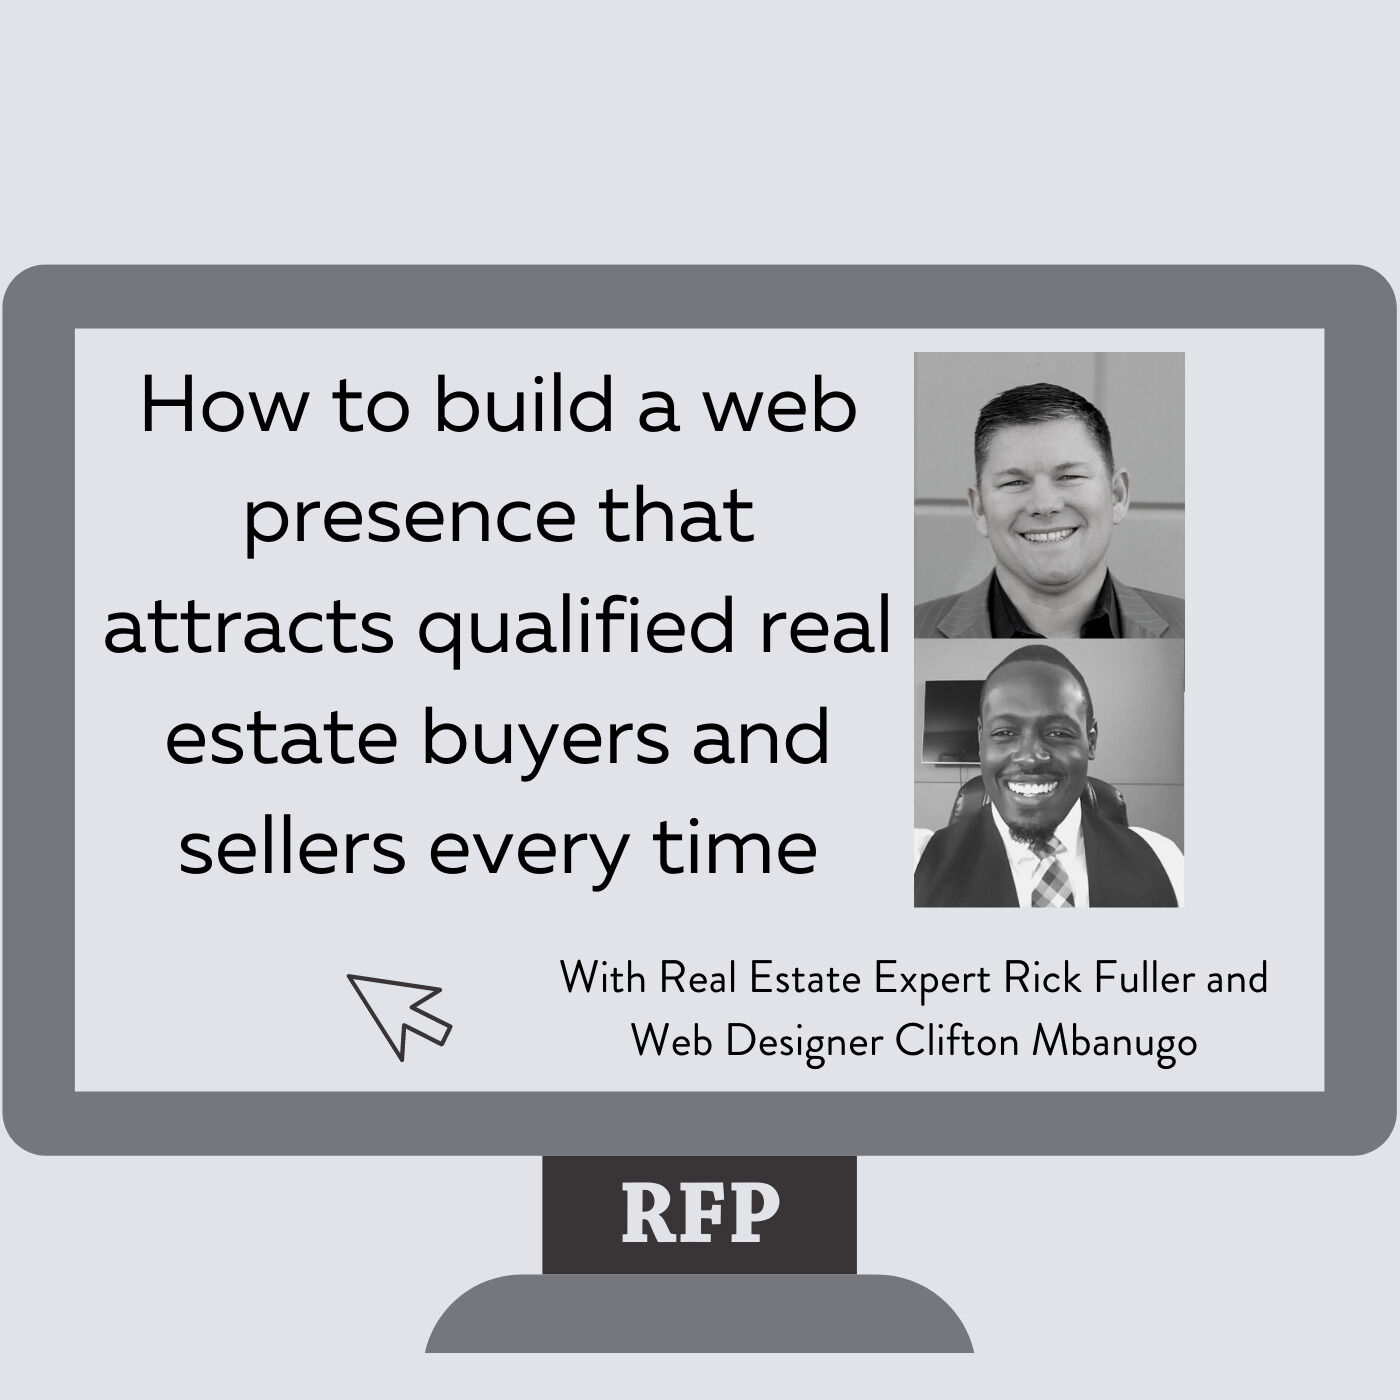 How to Build a Web Presence that Attracts Qualified Real Estate Buyers & Sellers Every Time